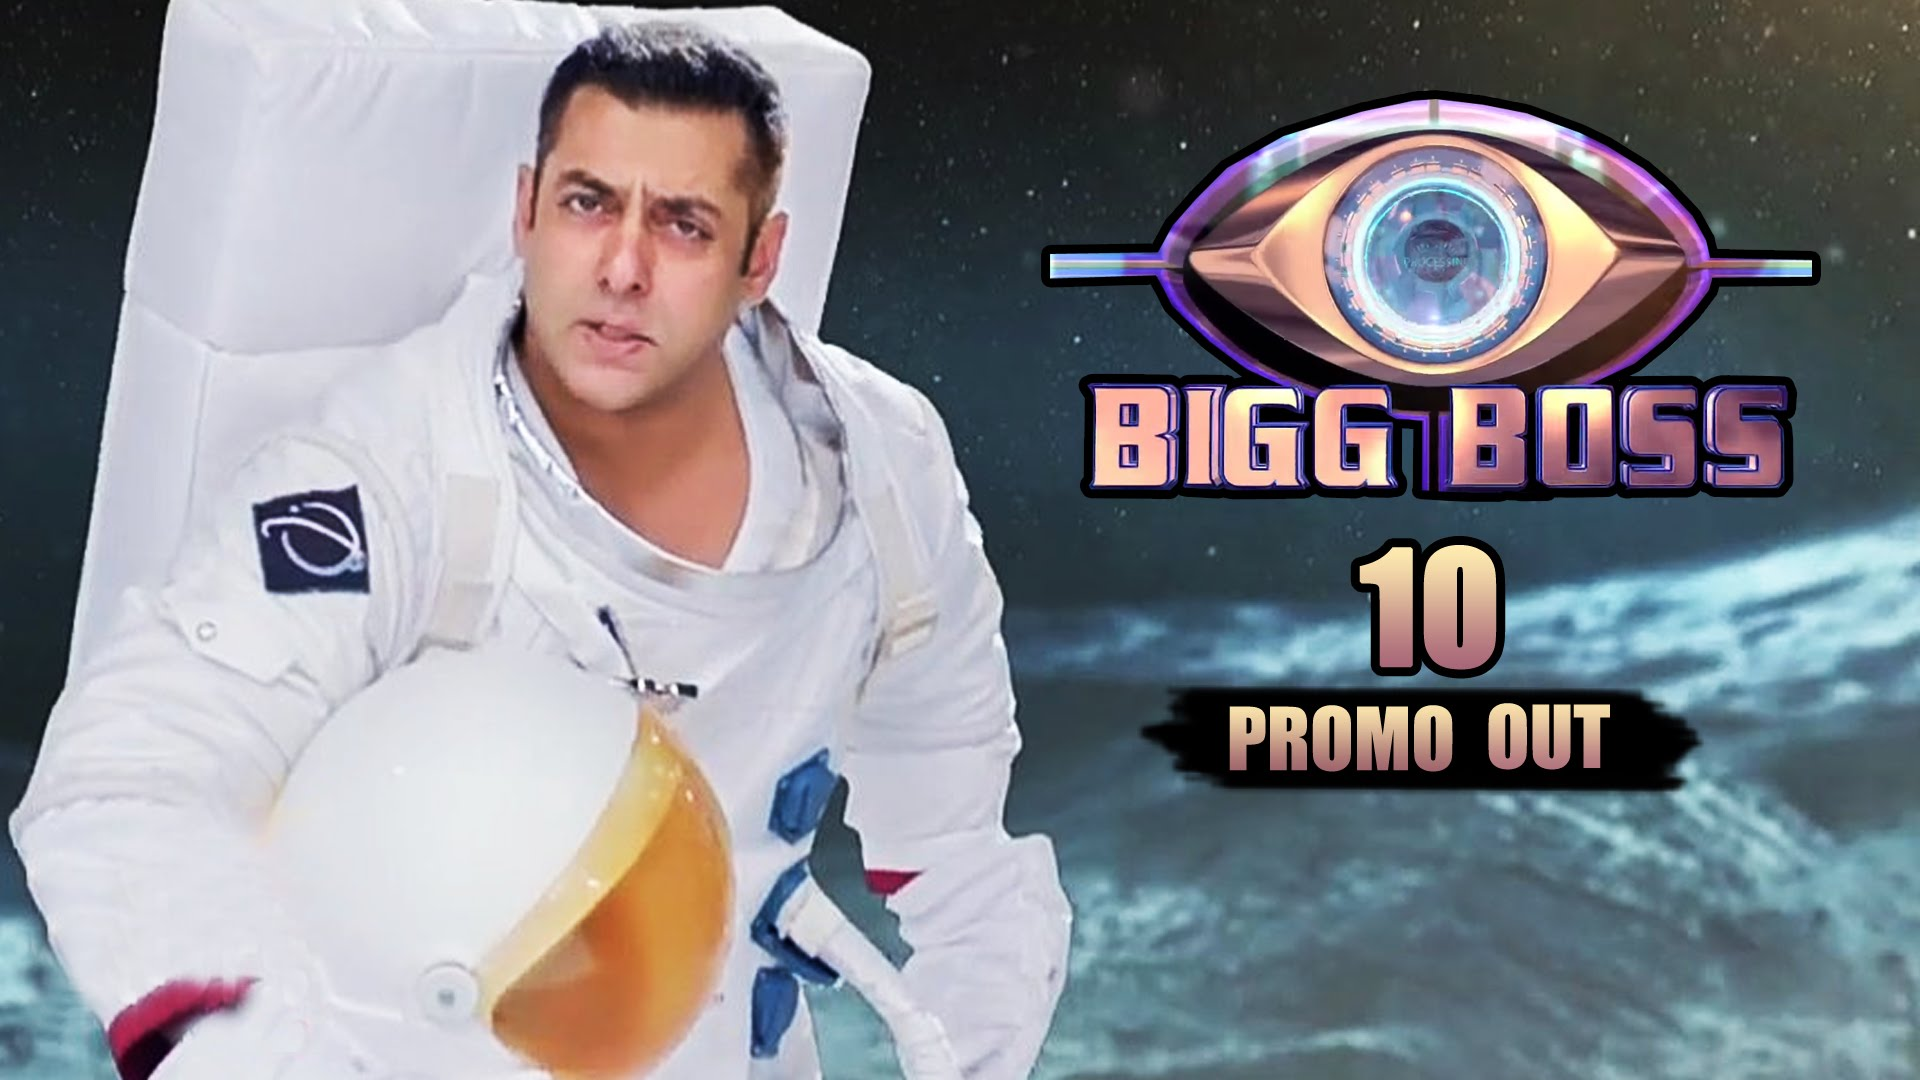 Bigg Boss 10 Promo Out – Salman Khan will be Seen in Indiana Jones Role